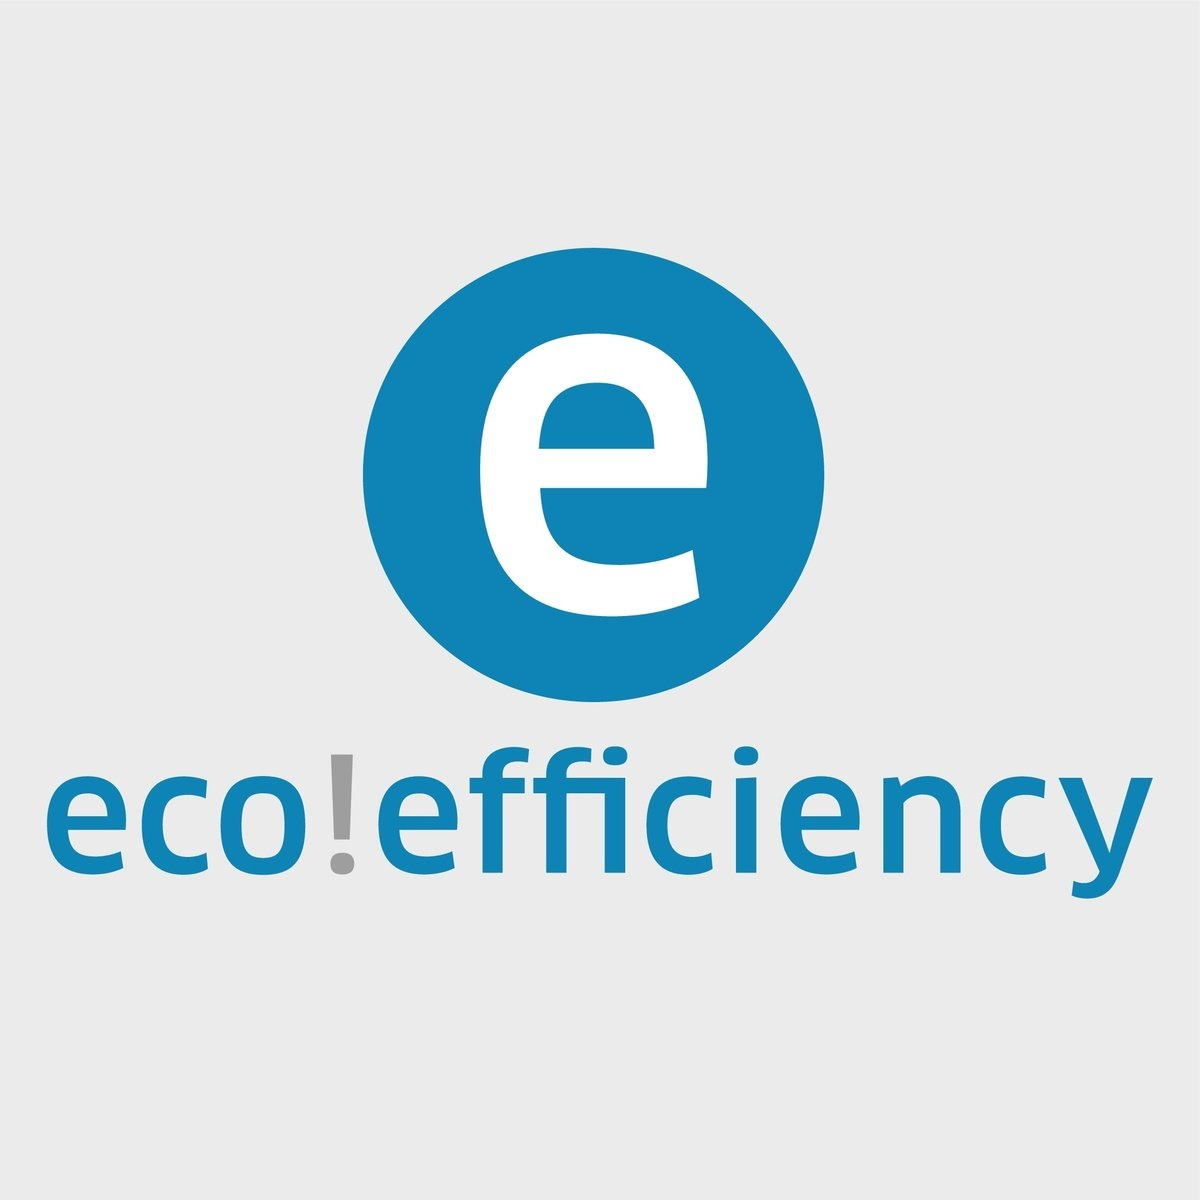 logo ecoefficiency 4c det 1502x502